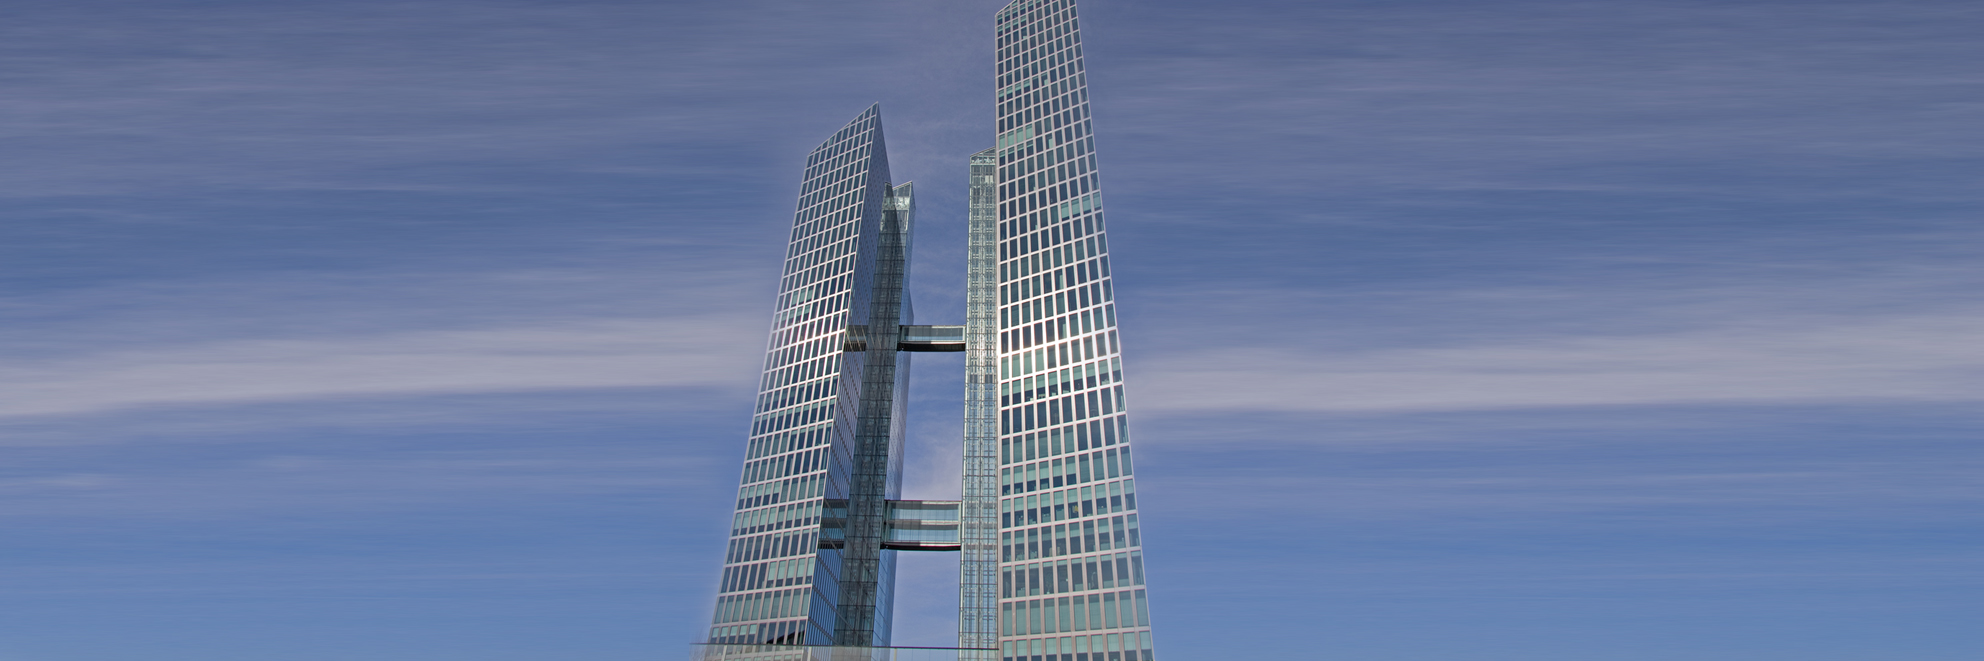 Copy of Highlight Towers München